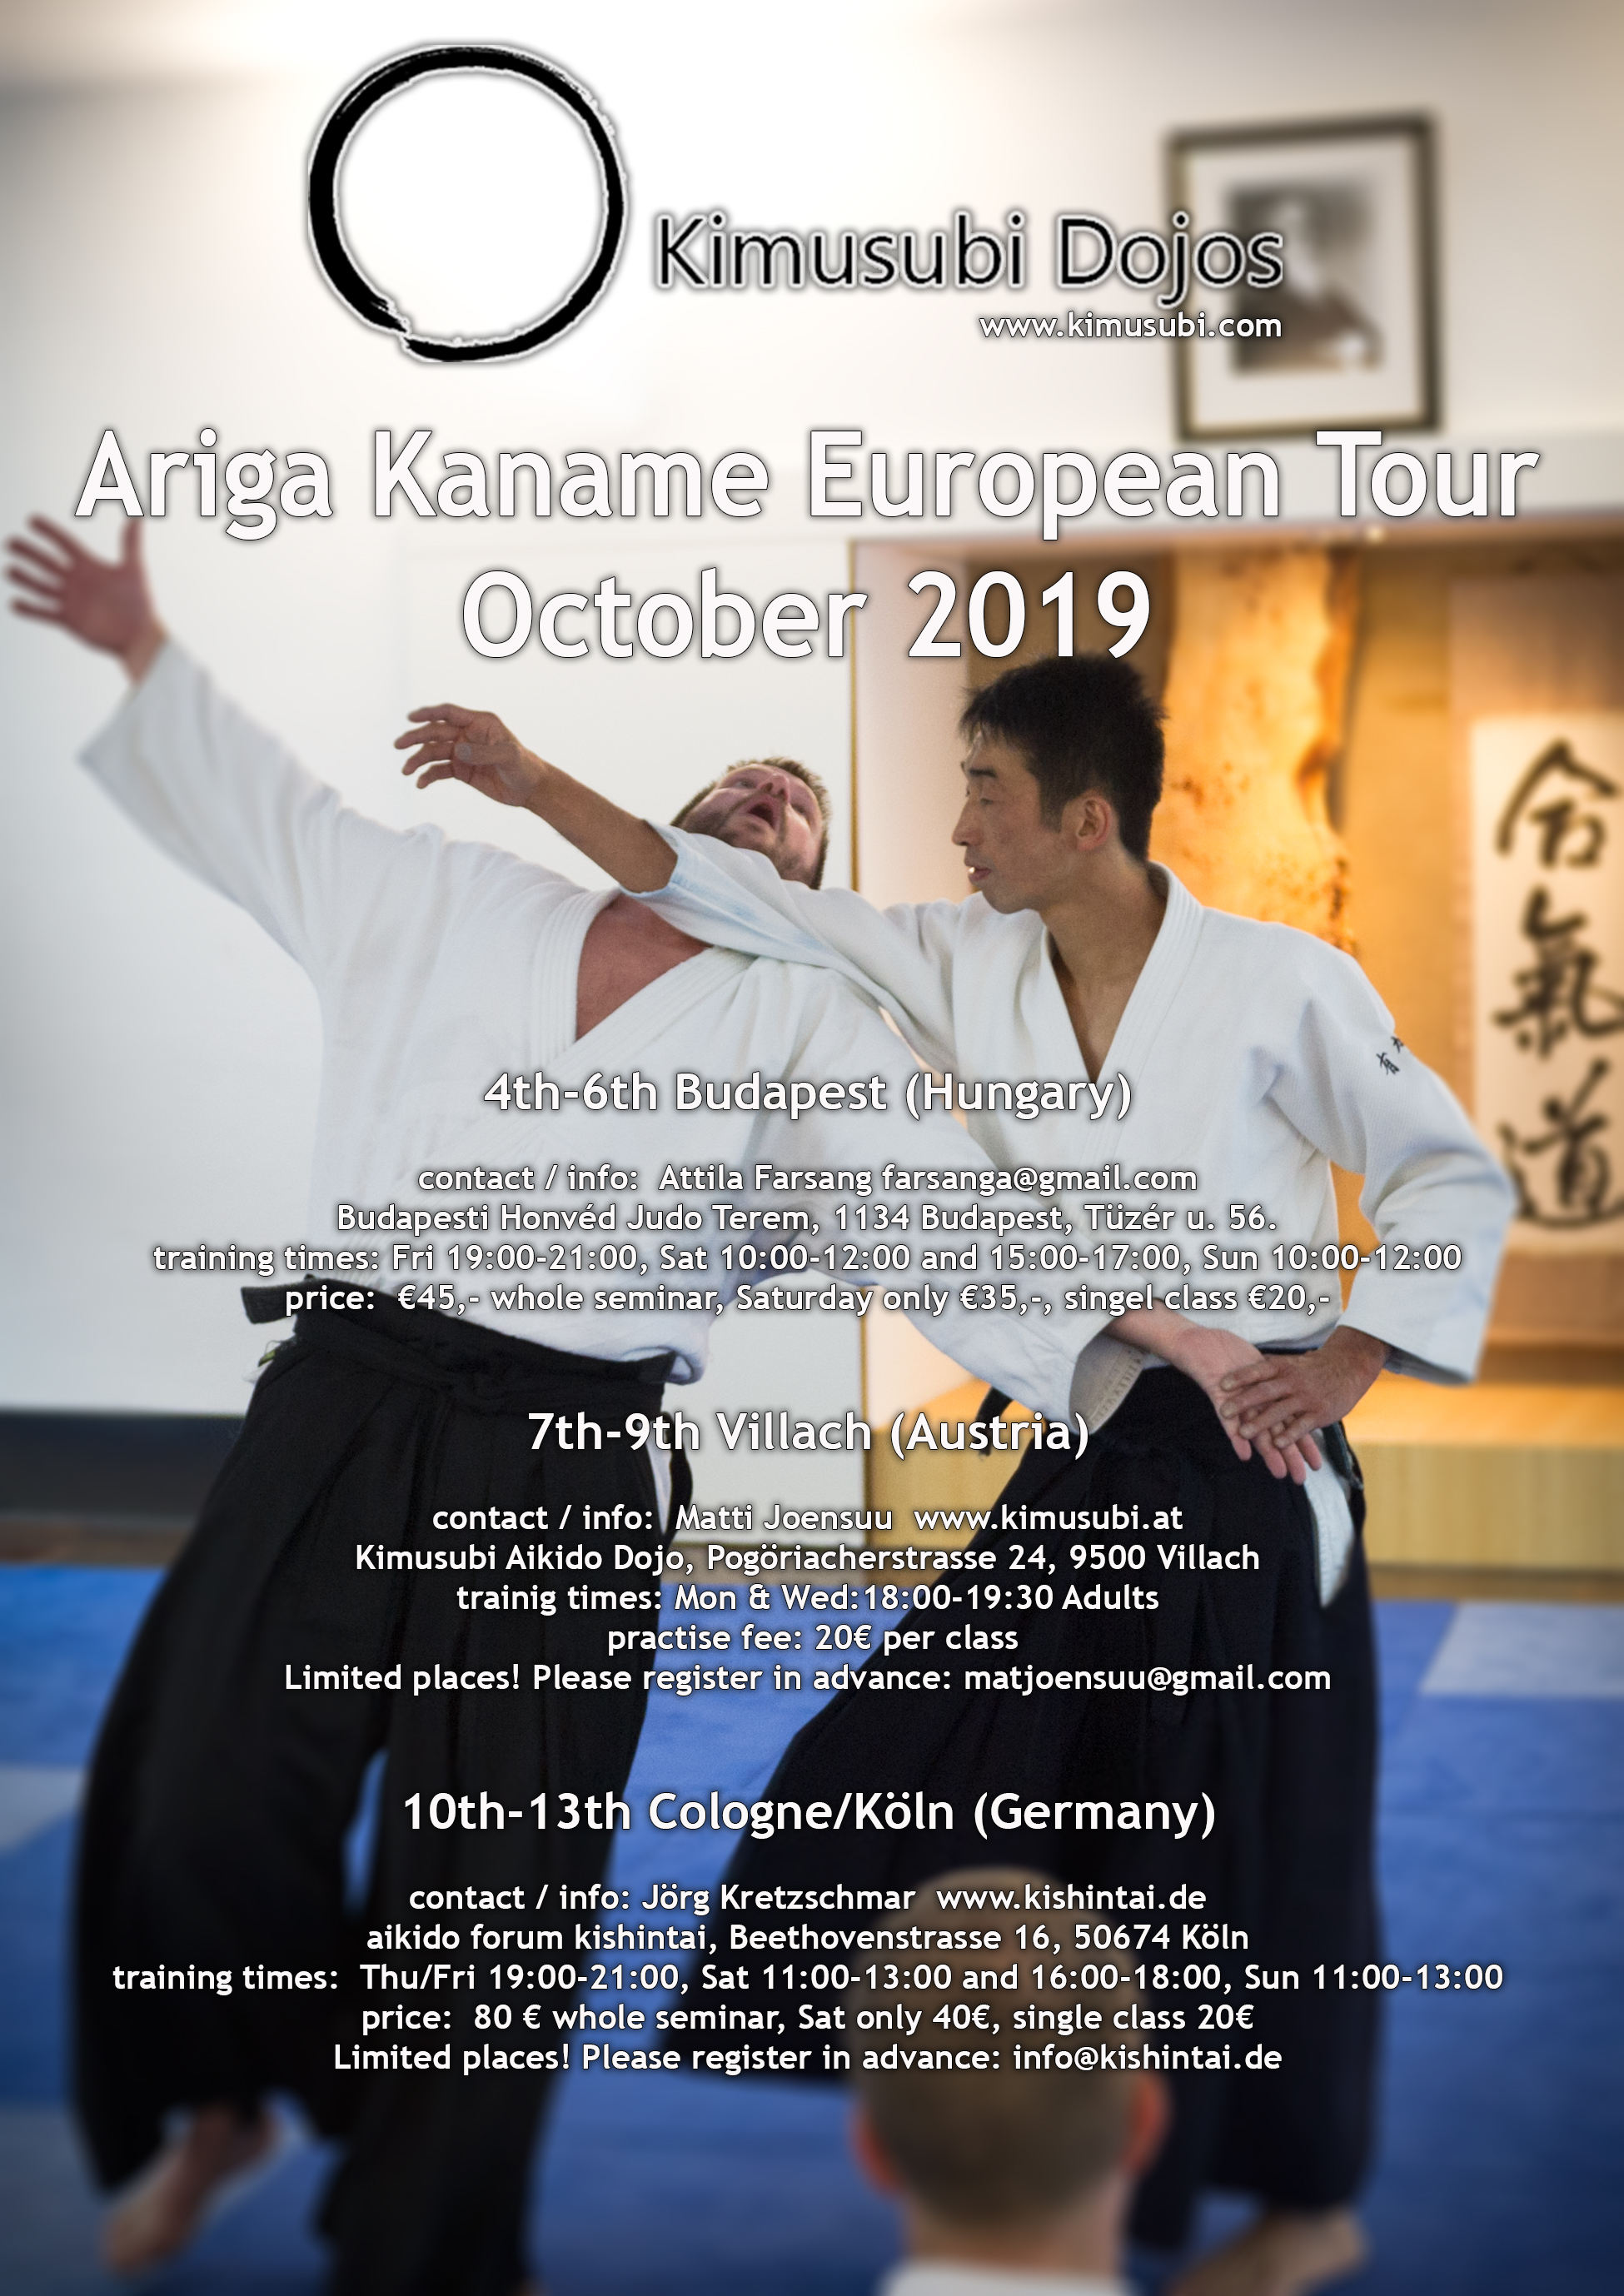 Ariga Kaname European Tour October 2019